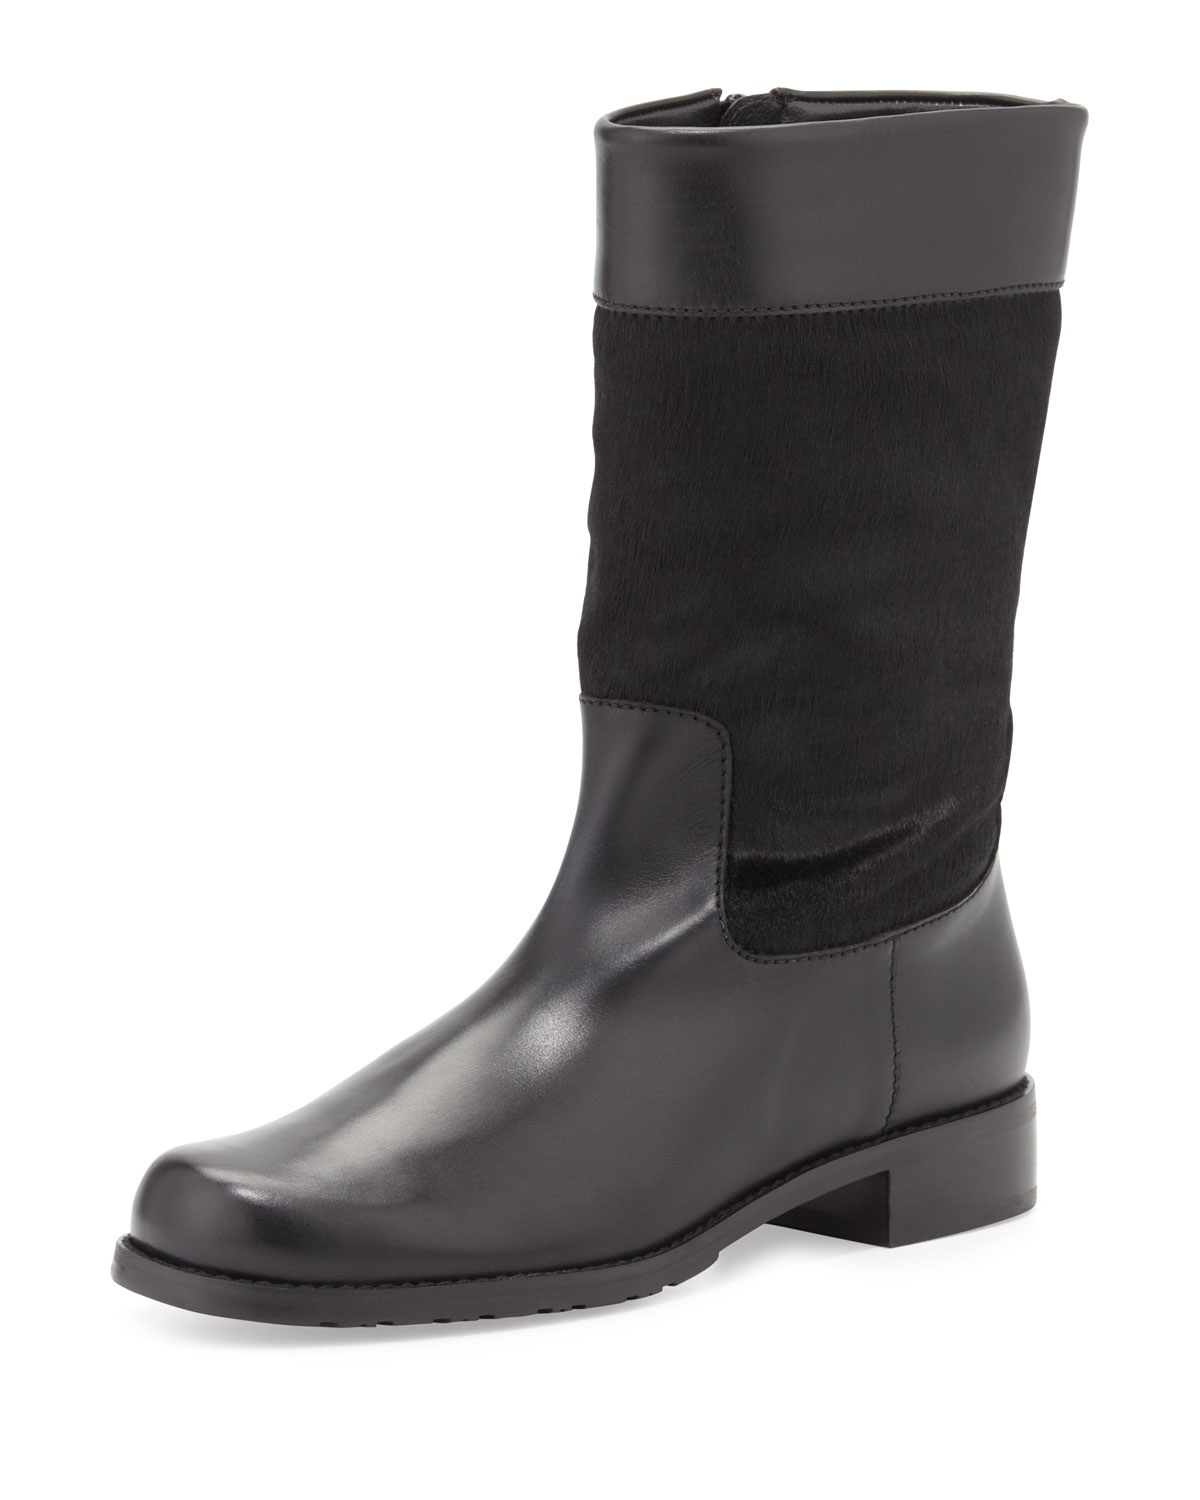 stuart weitzman big boy calf hair flat boot in black lyst